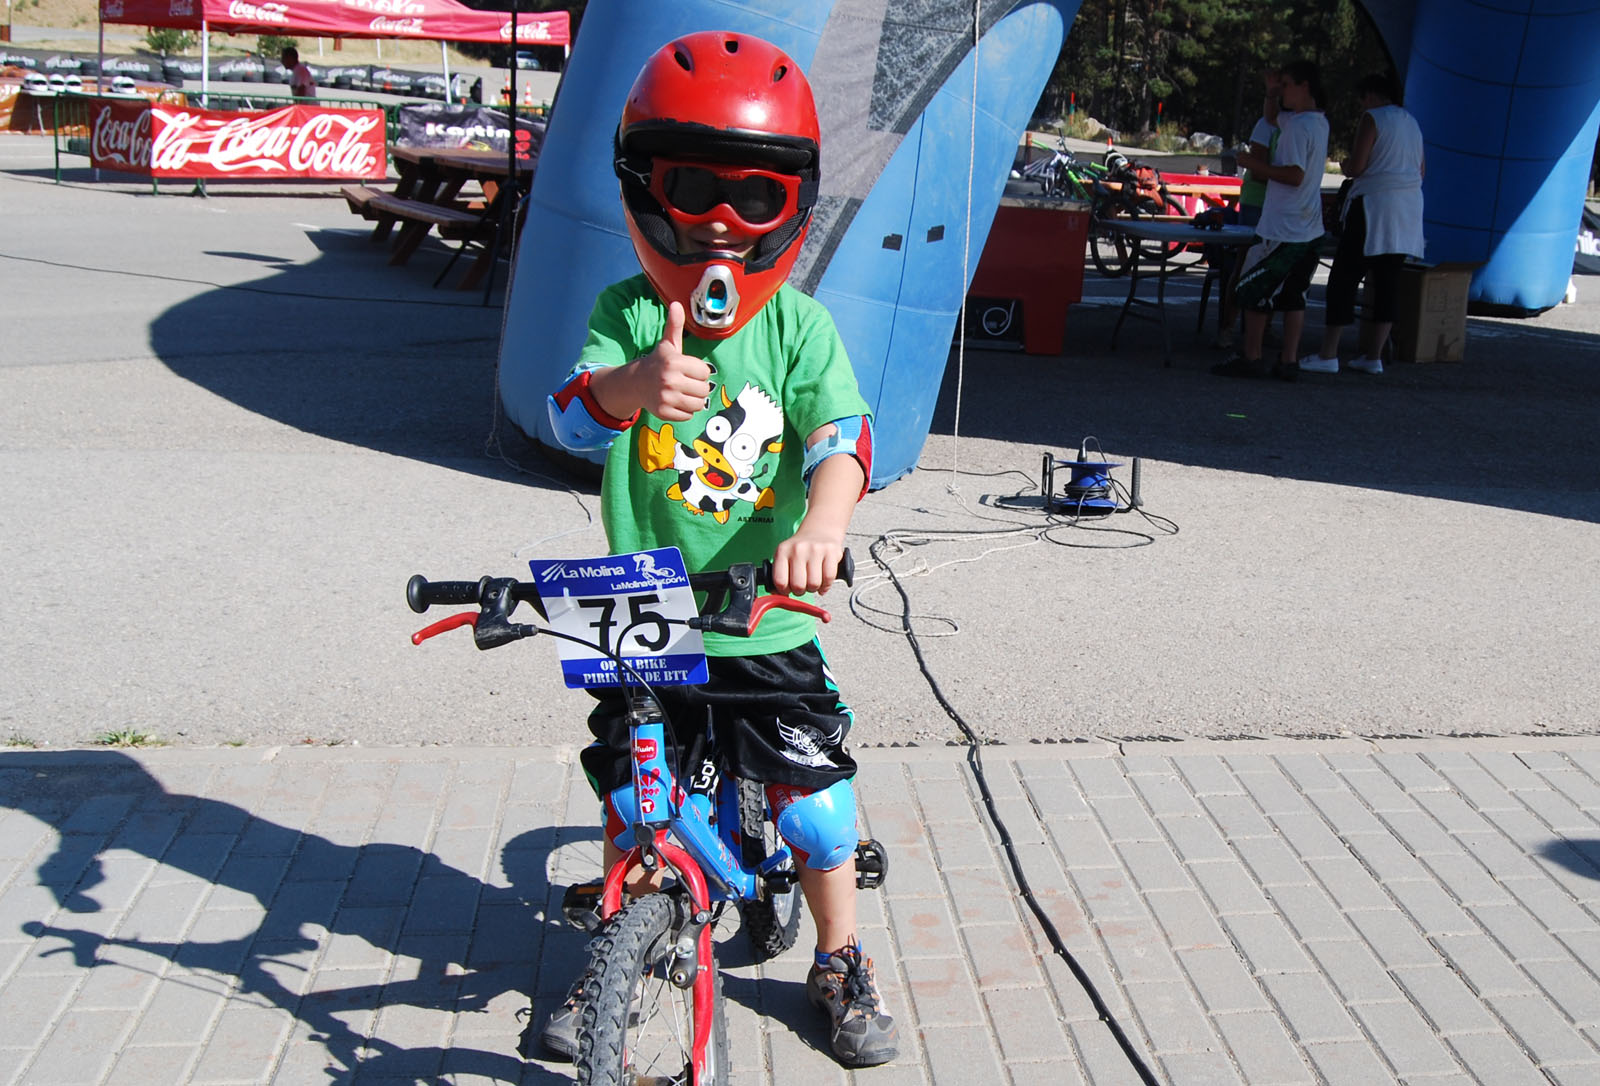 Season Bike Park Pass for children